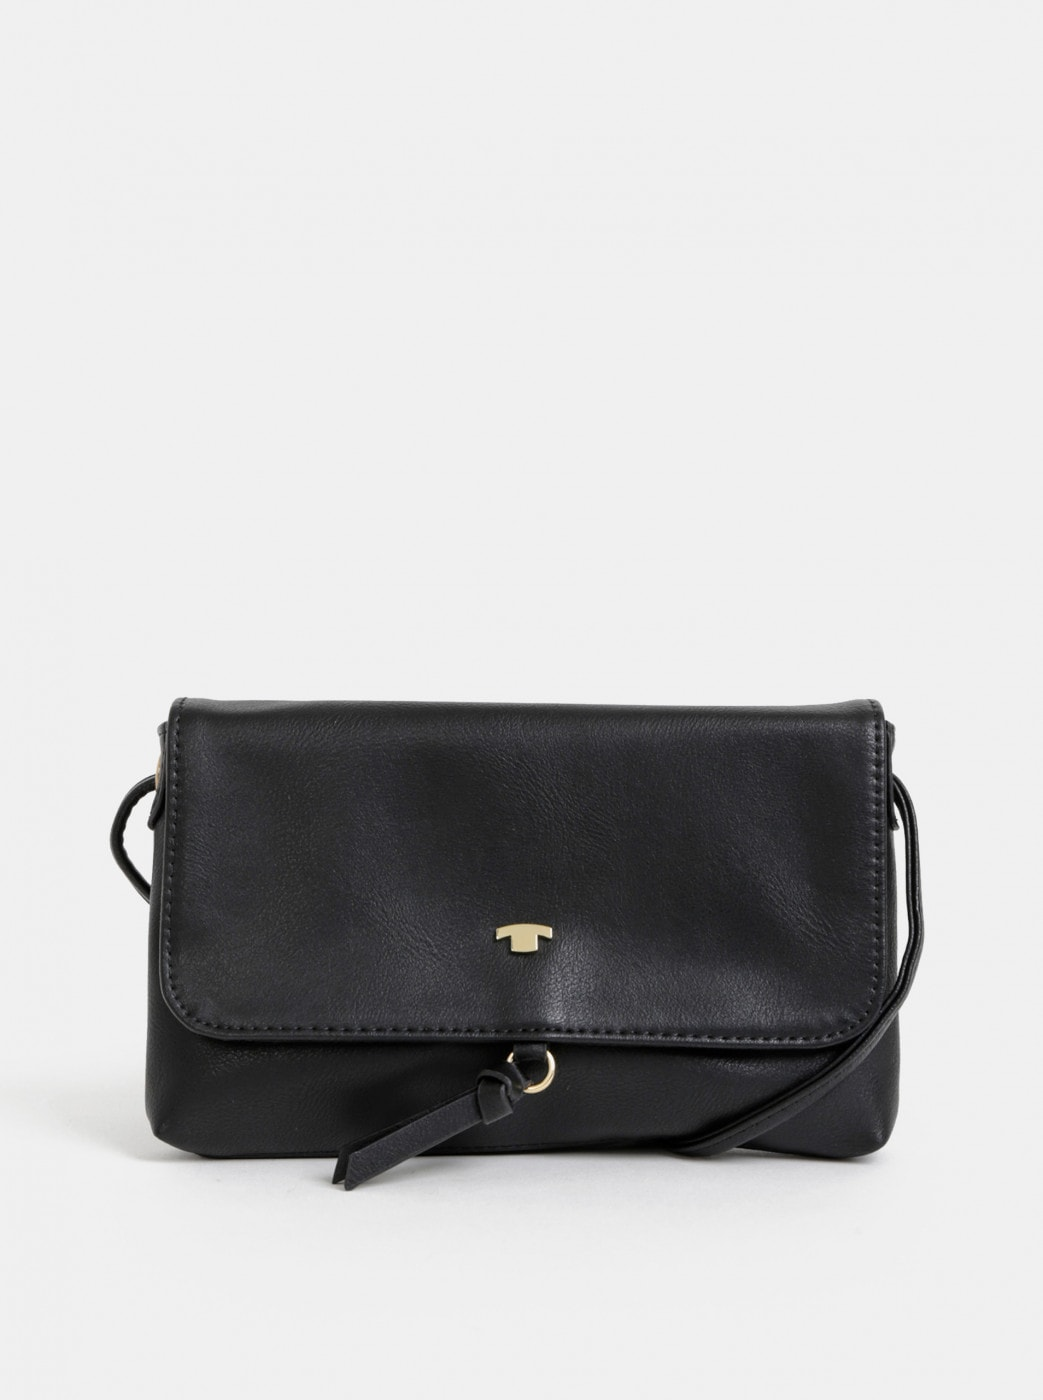 Tom Tailor Luna Black Crossbody Handbag